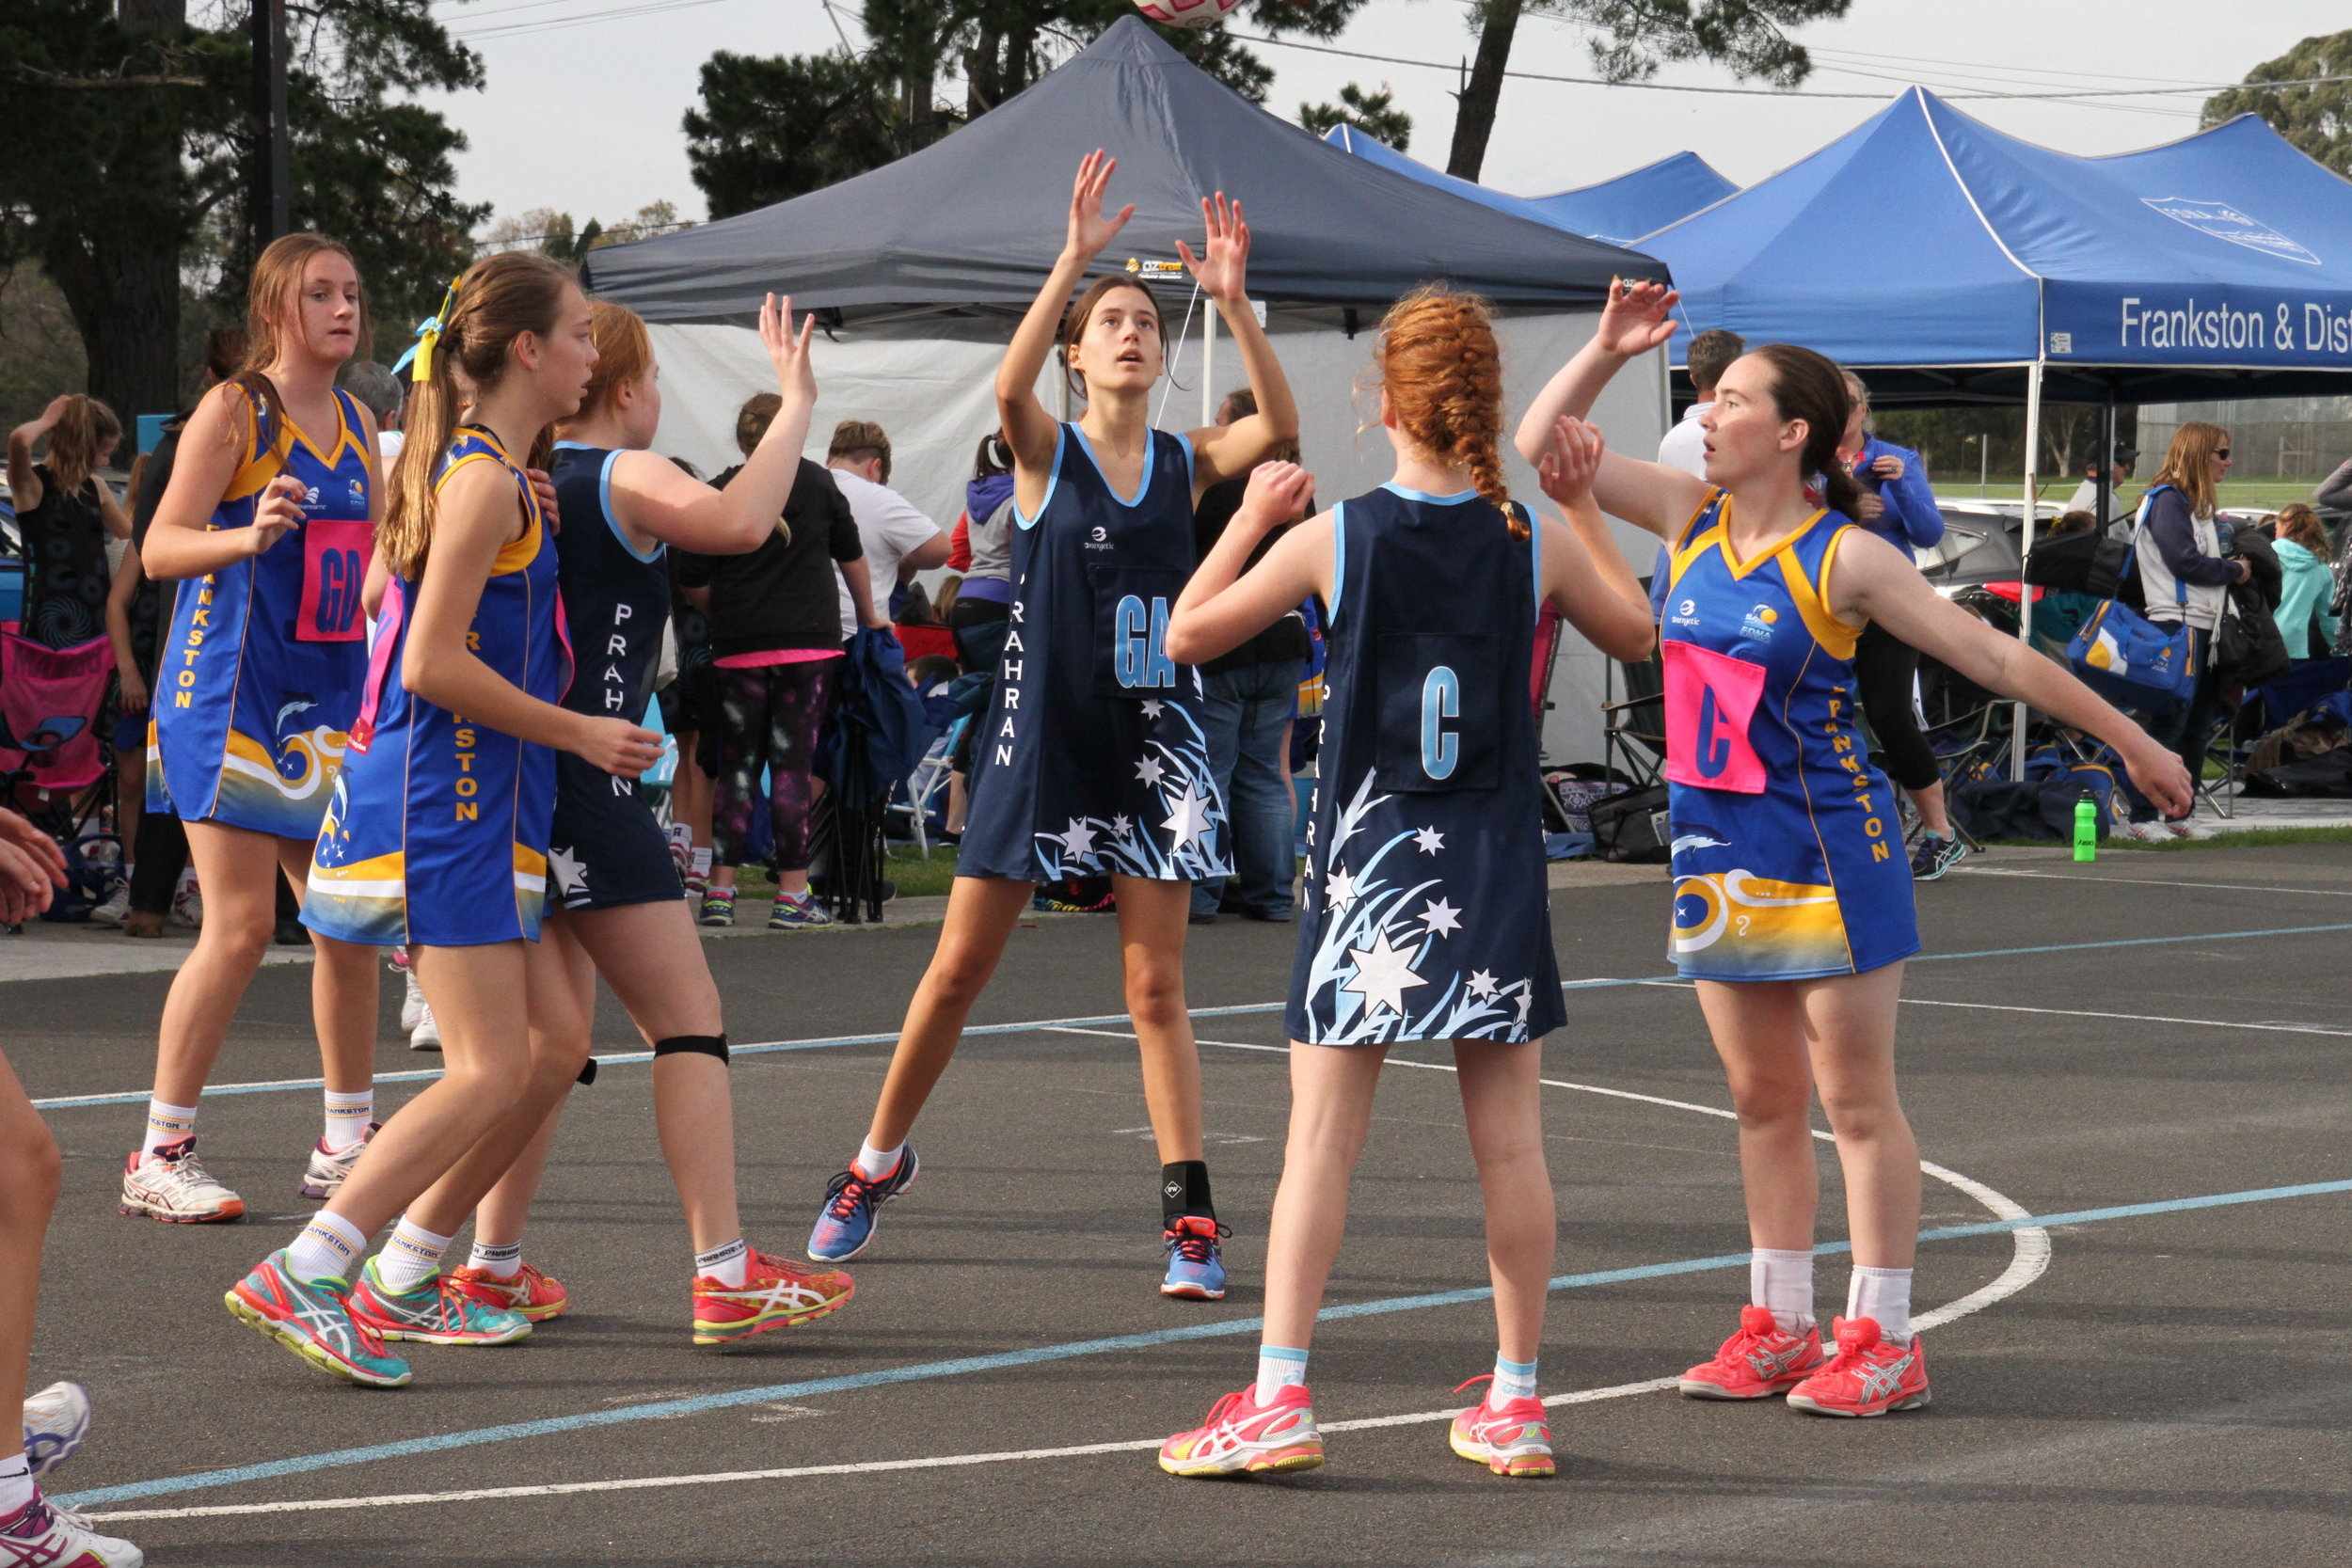 2016-05-22 Dandenong Netball Tournament 231.JPG